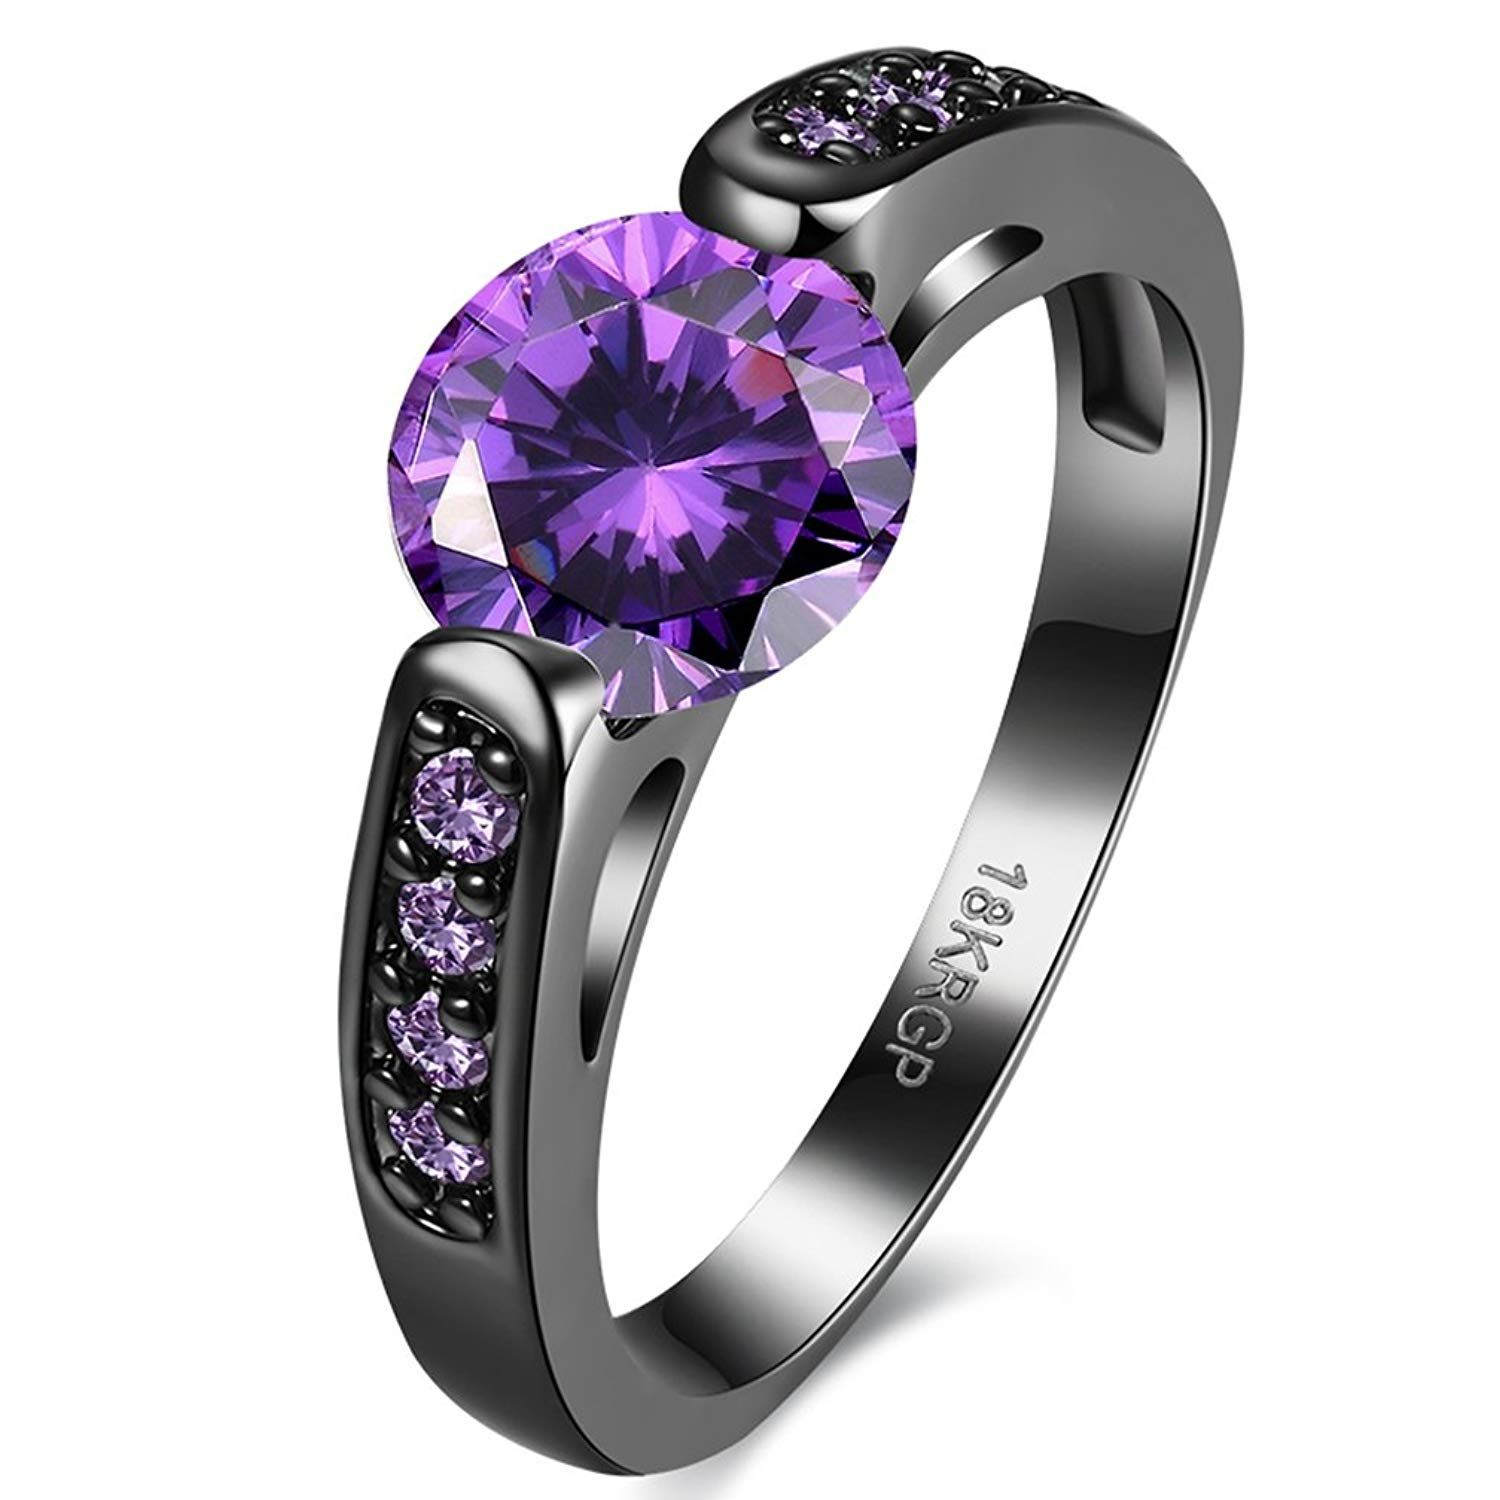 Jewelry Women Engagement Purple Red CZ Heart Love Square Crystal Wedding Ring